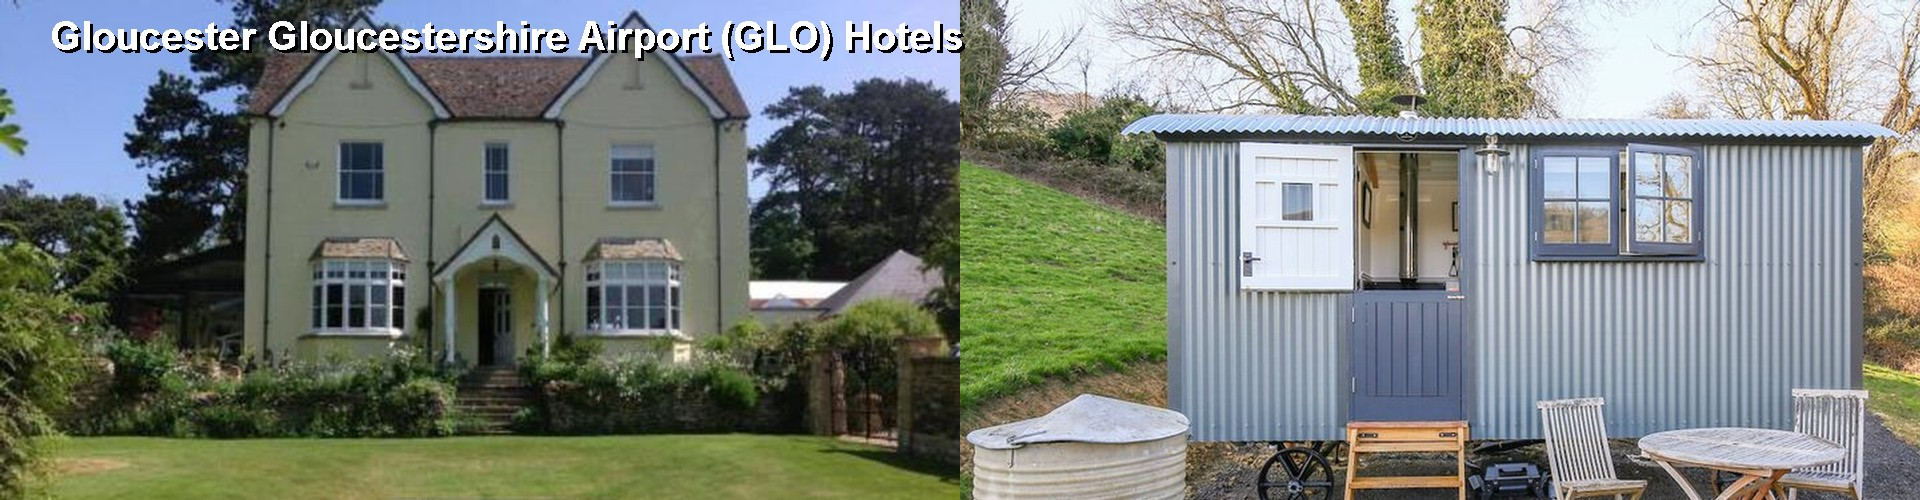 5 Best Hotels near Gloucester Gloucestershire Airport (GLO)